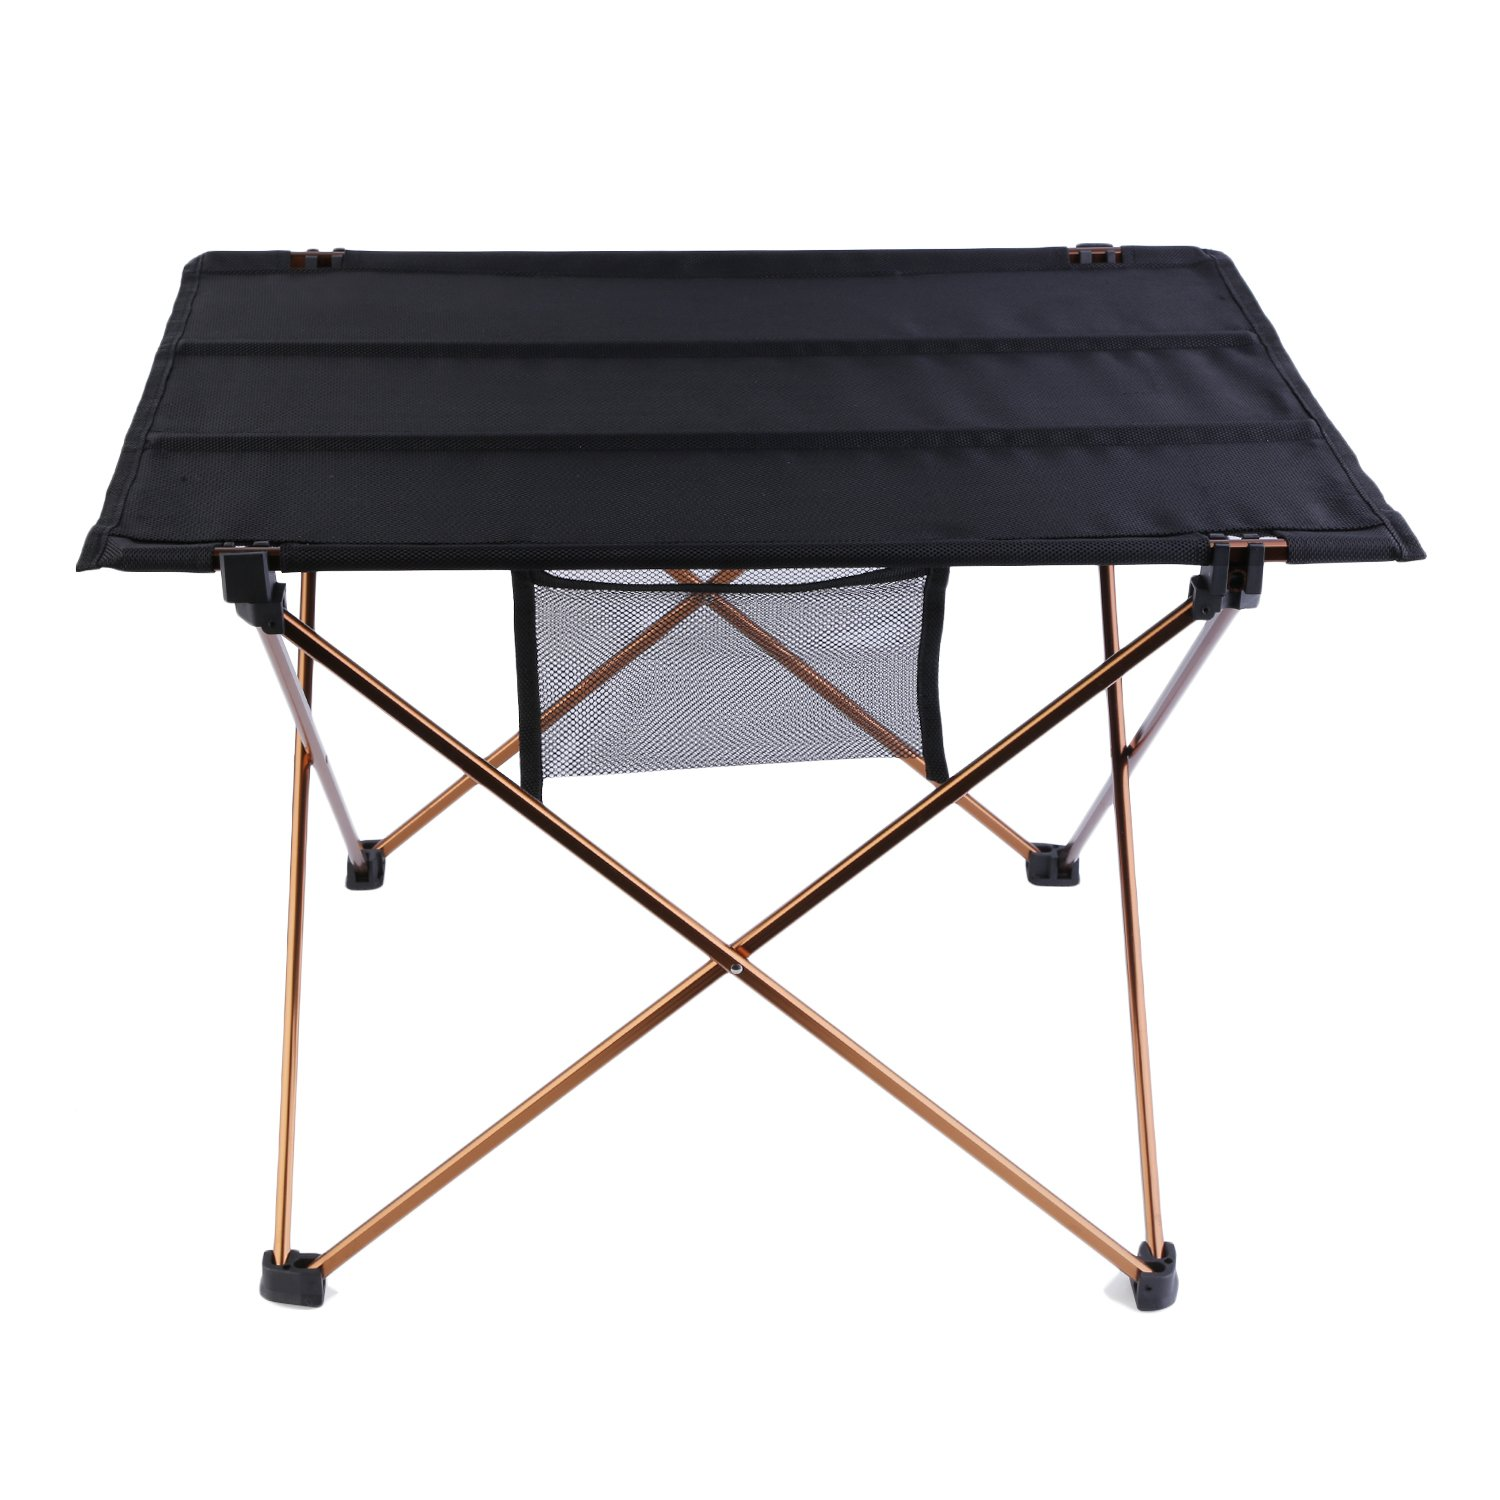 Amazon.com : OUTAD Ultralight And Portable Folding Camping Table (Weight:  1.5lb; Unfolded Size: 22 X 16.5 X 14.6 Inches) : Sports U0026 Outdoors